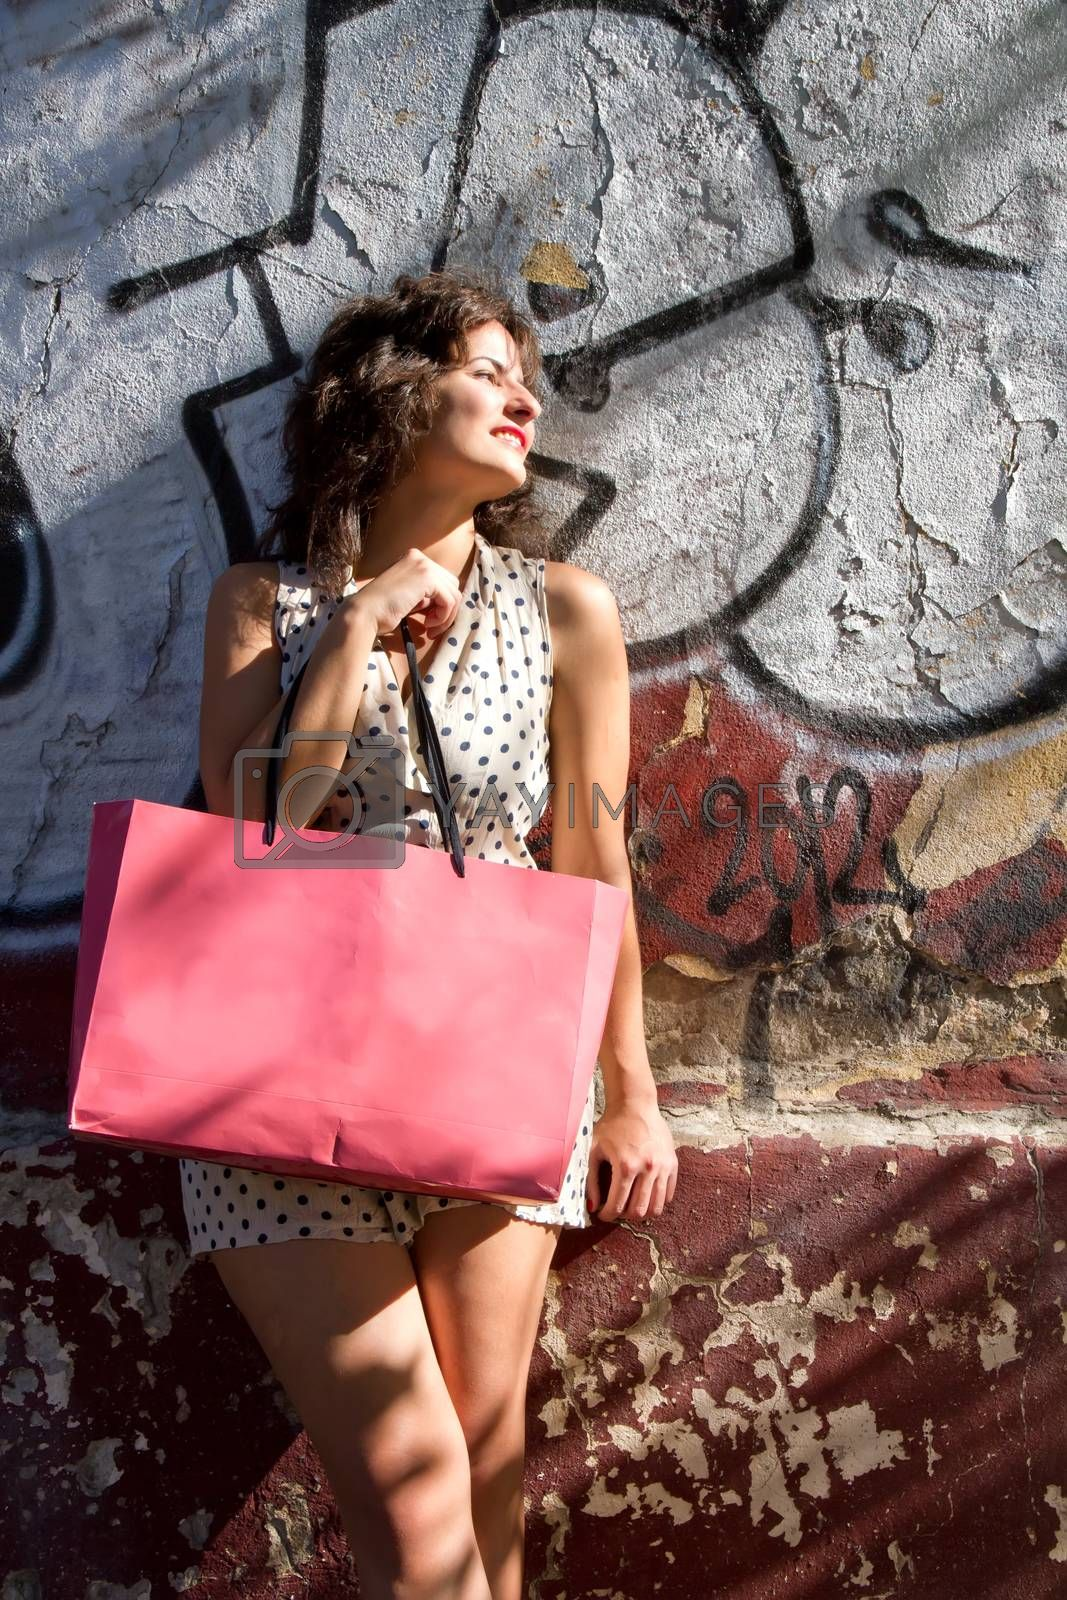 A young adult woman with a shopping bag in an urban environment.